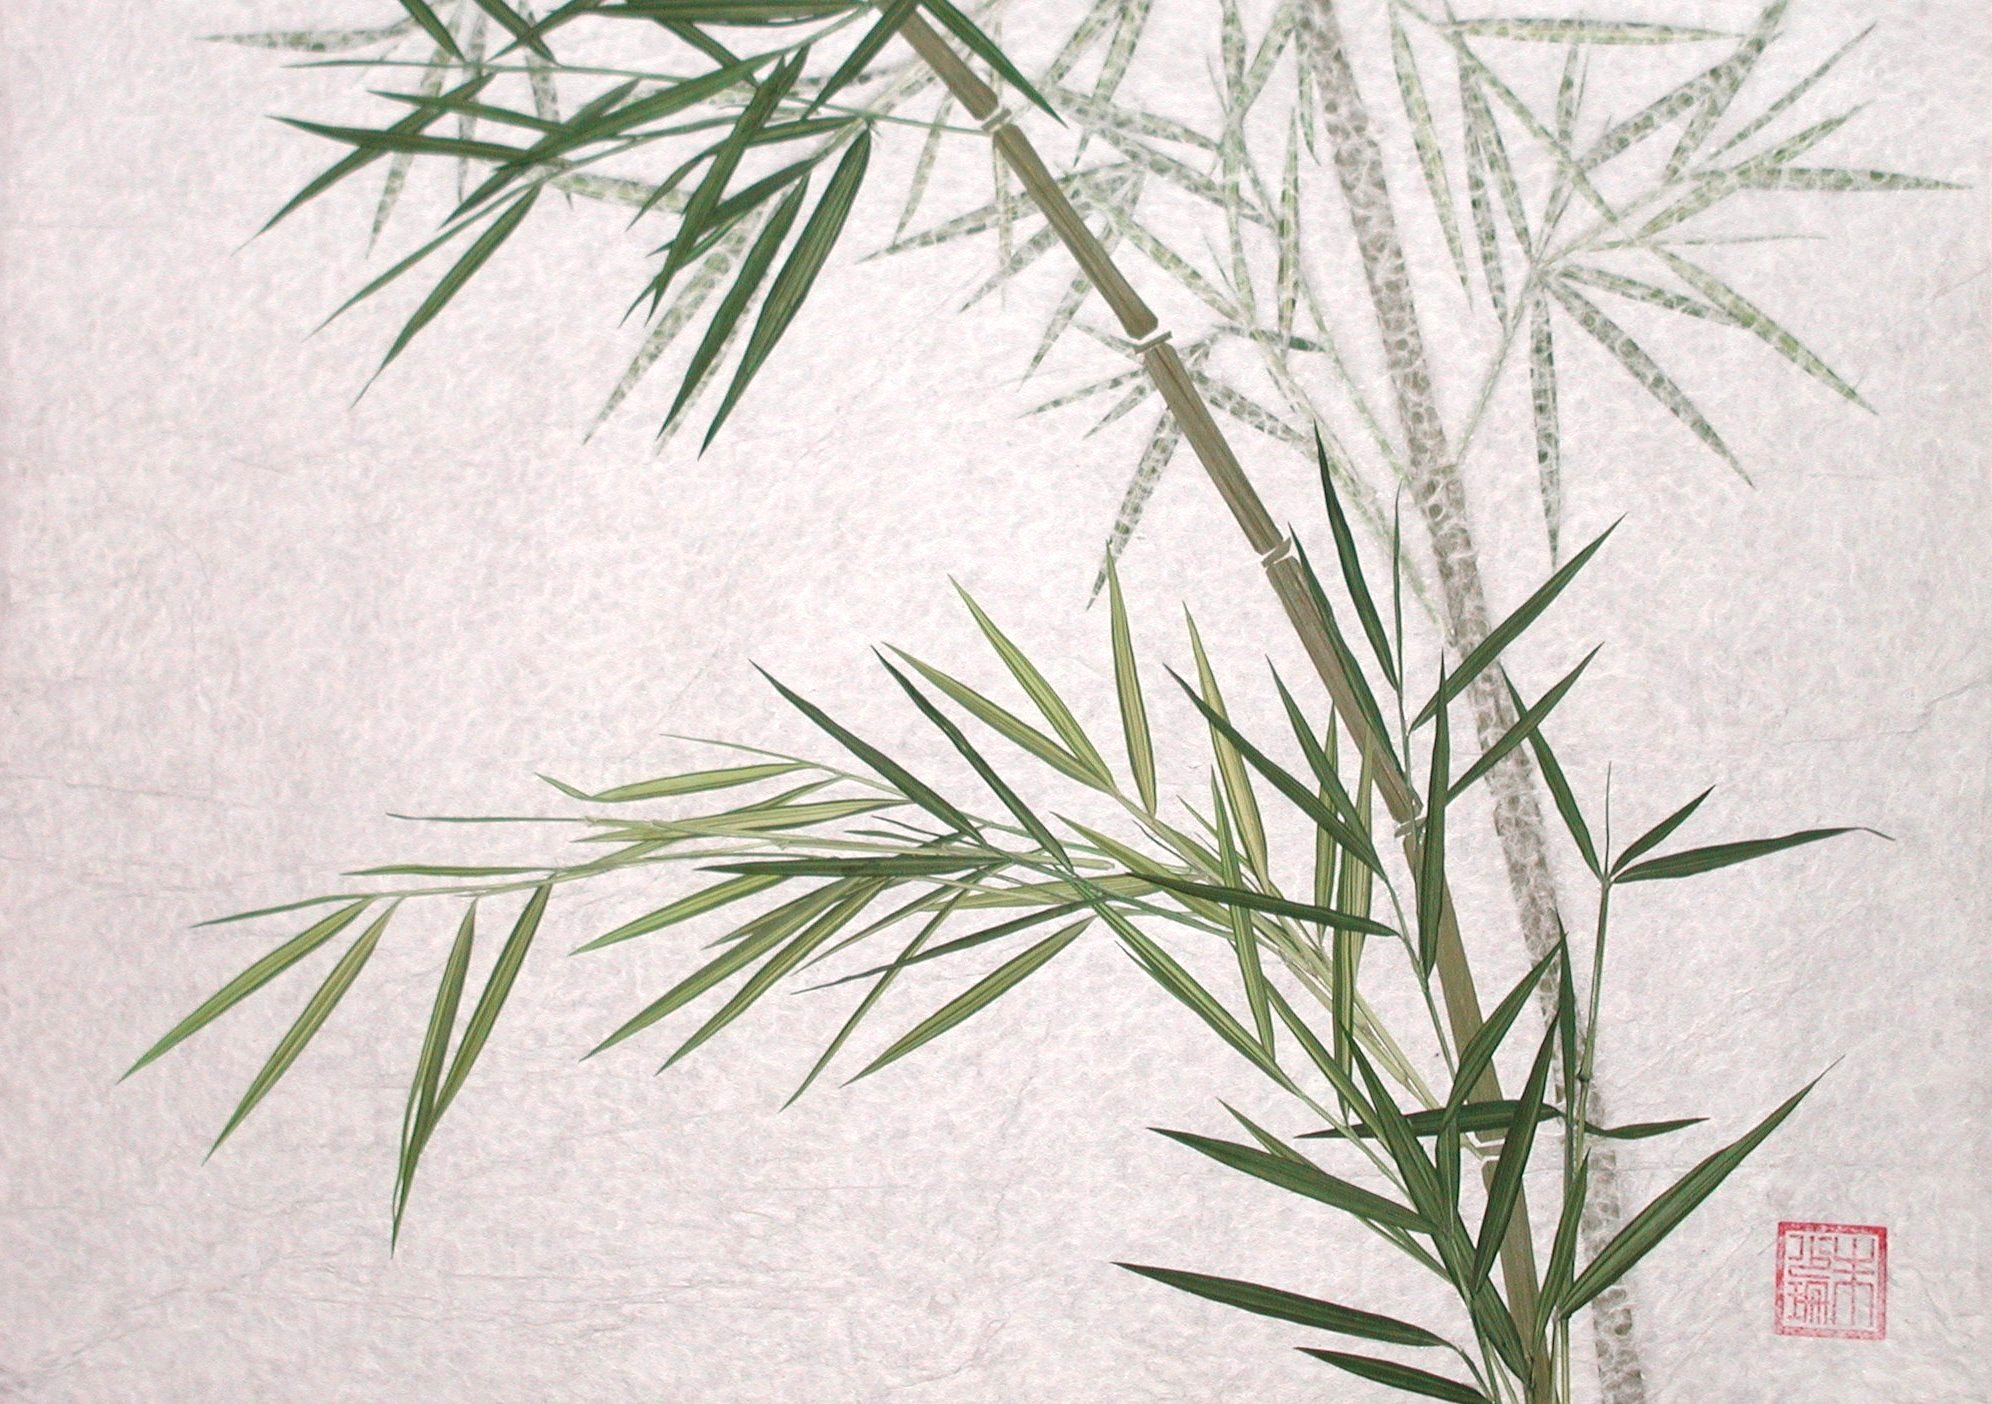 Bamboo Hd Wallpaper Background Image 1992x1404 Id 226020 Wallpaper Abyss